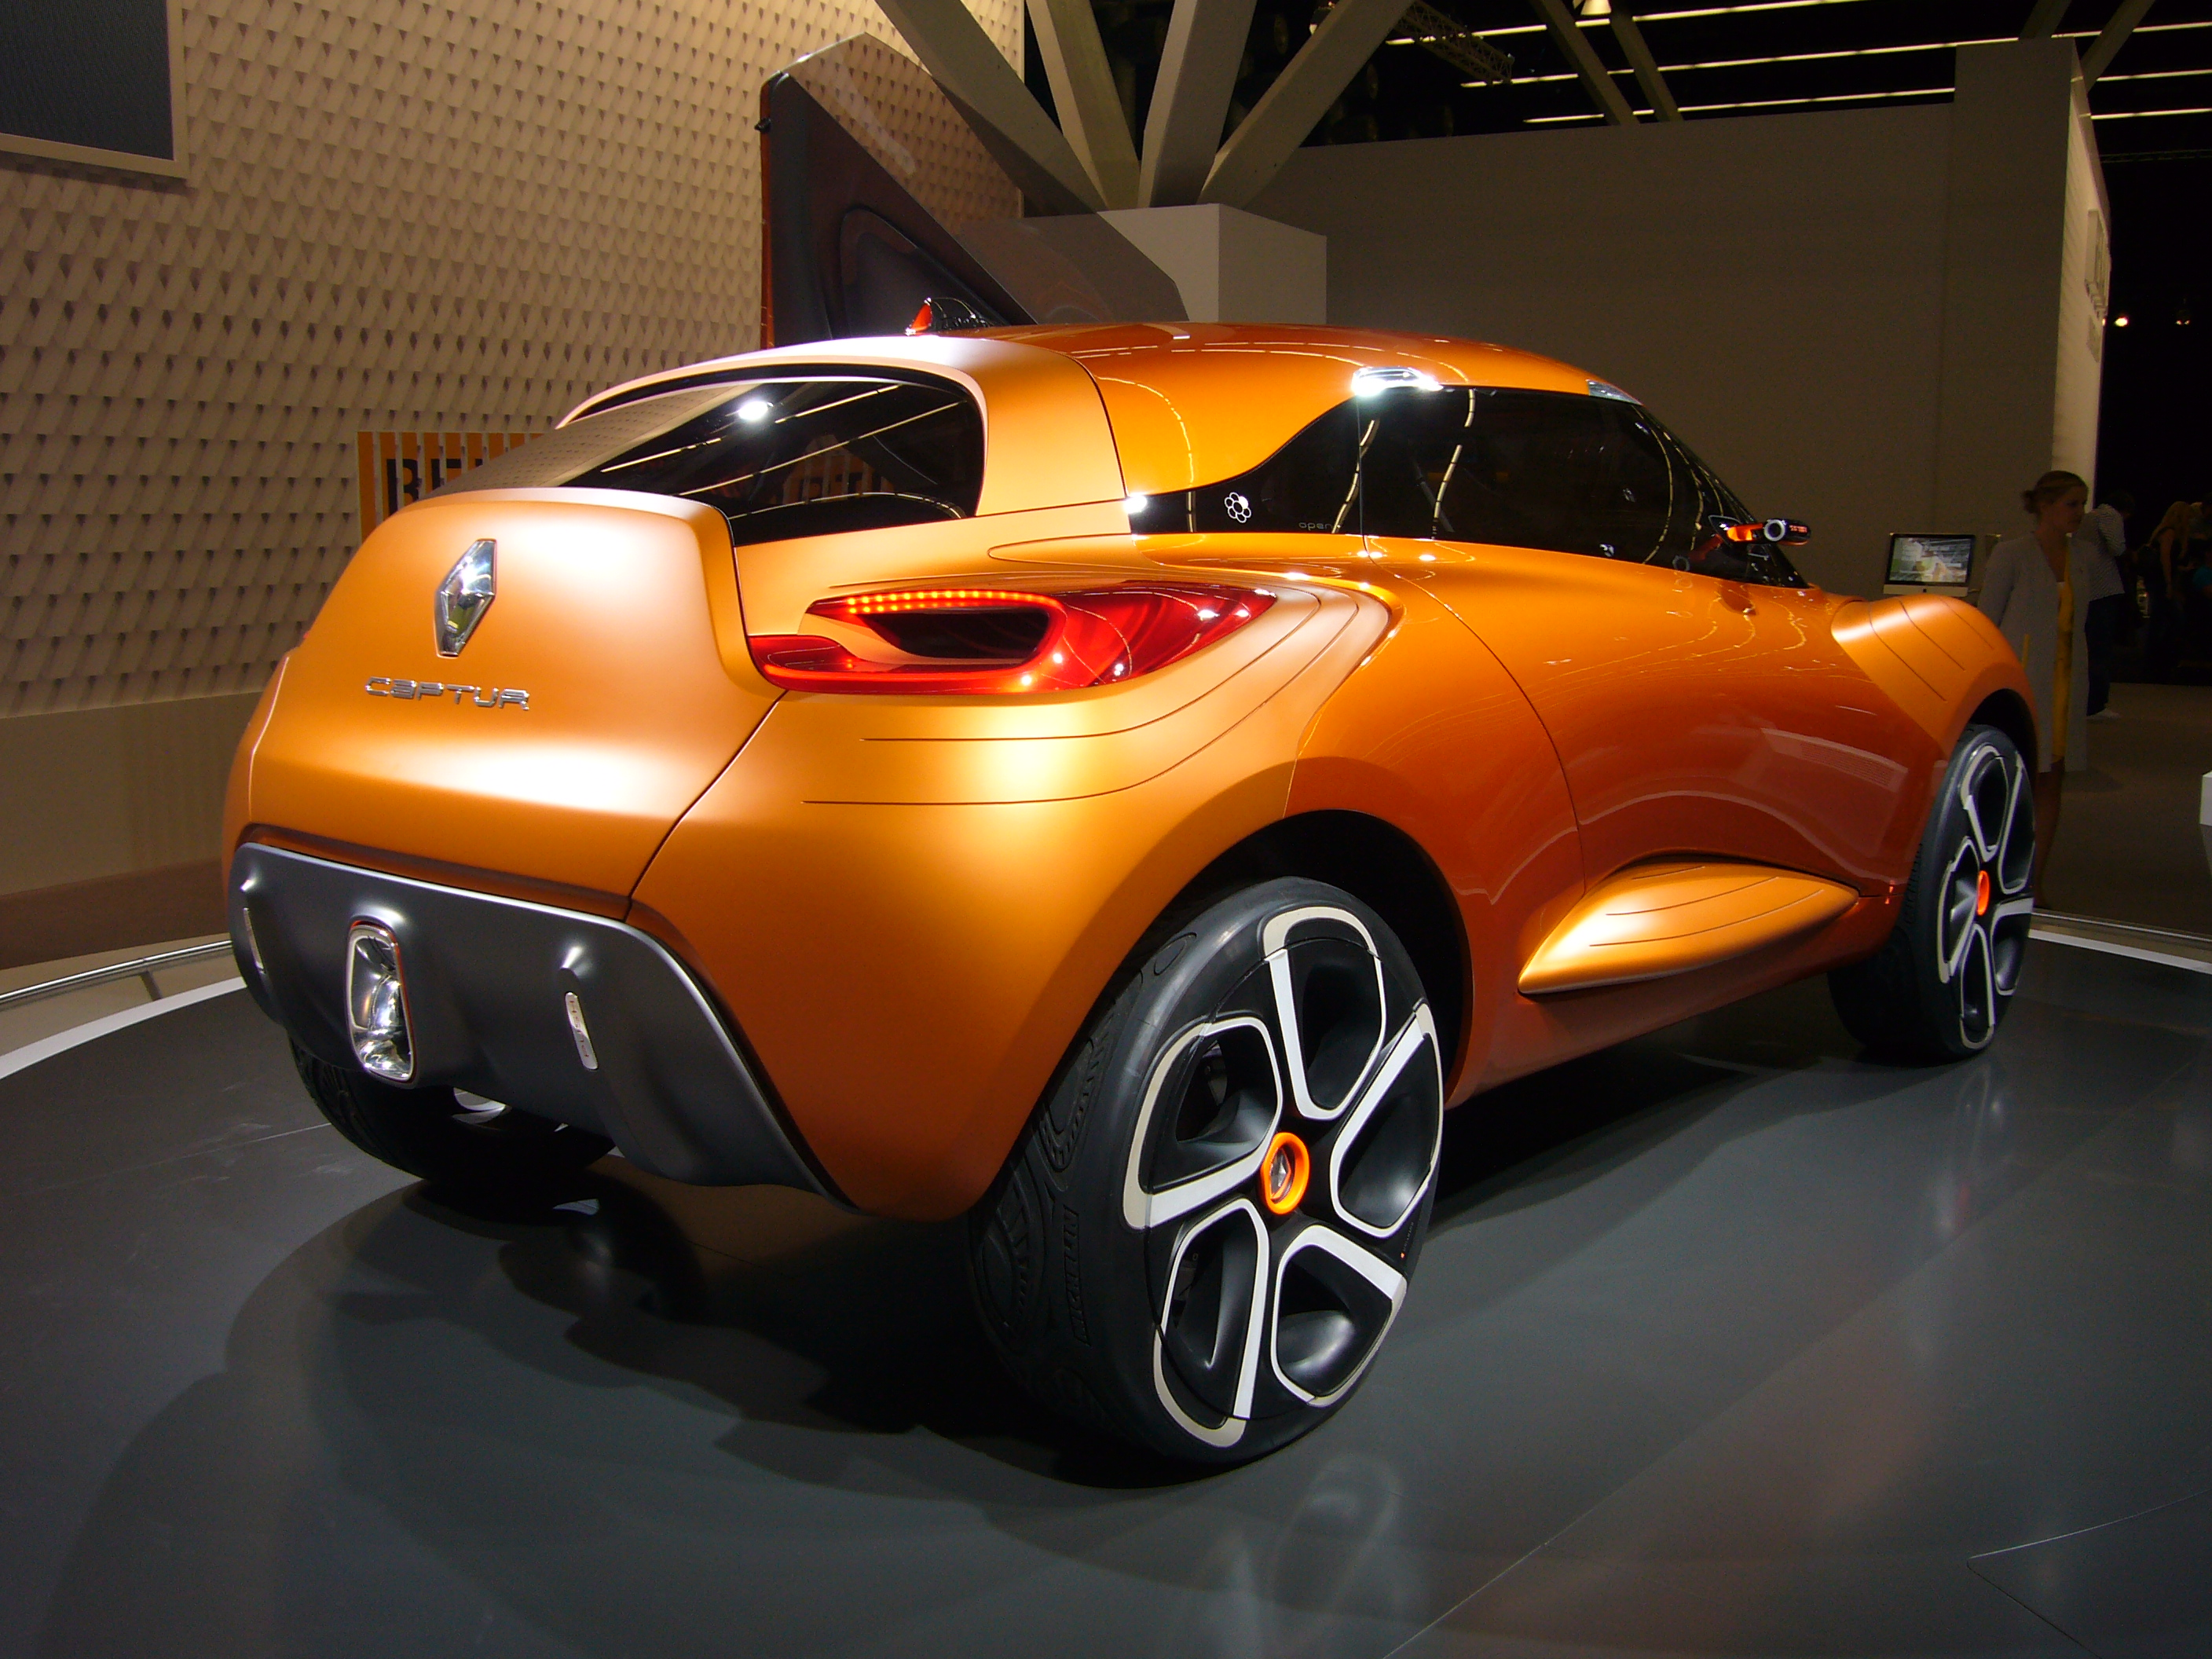 file renault captur concept rear quarter jpg wikimedia commons. Black Bedroom Furniture Sets. Home Design Ideas